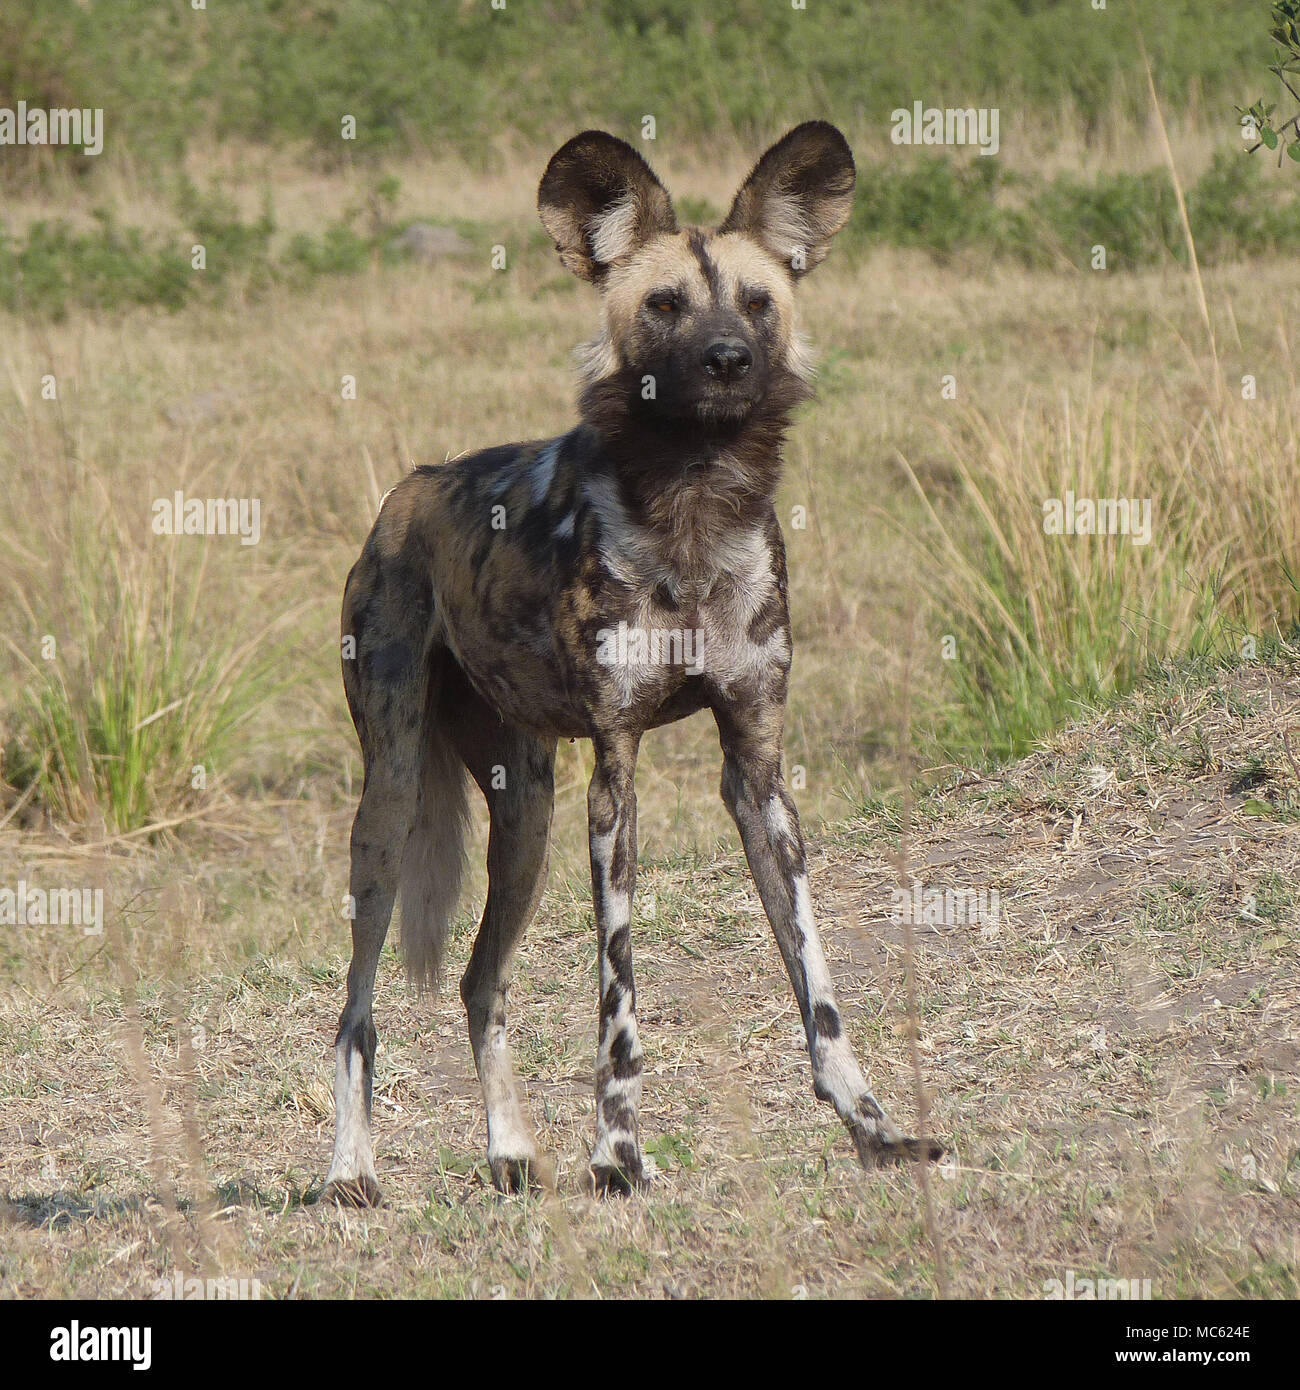 African hunting Dog - Stock Image